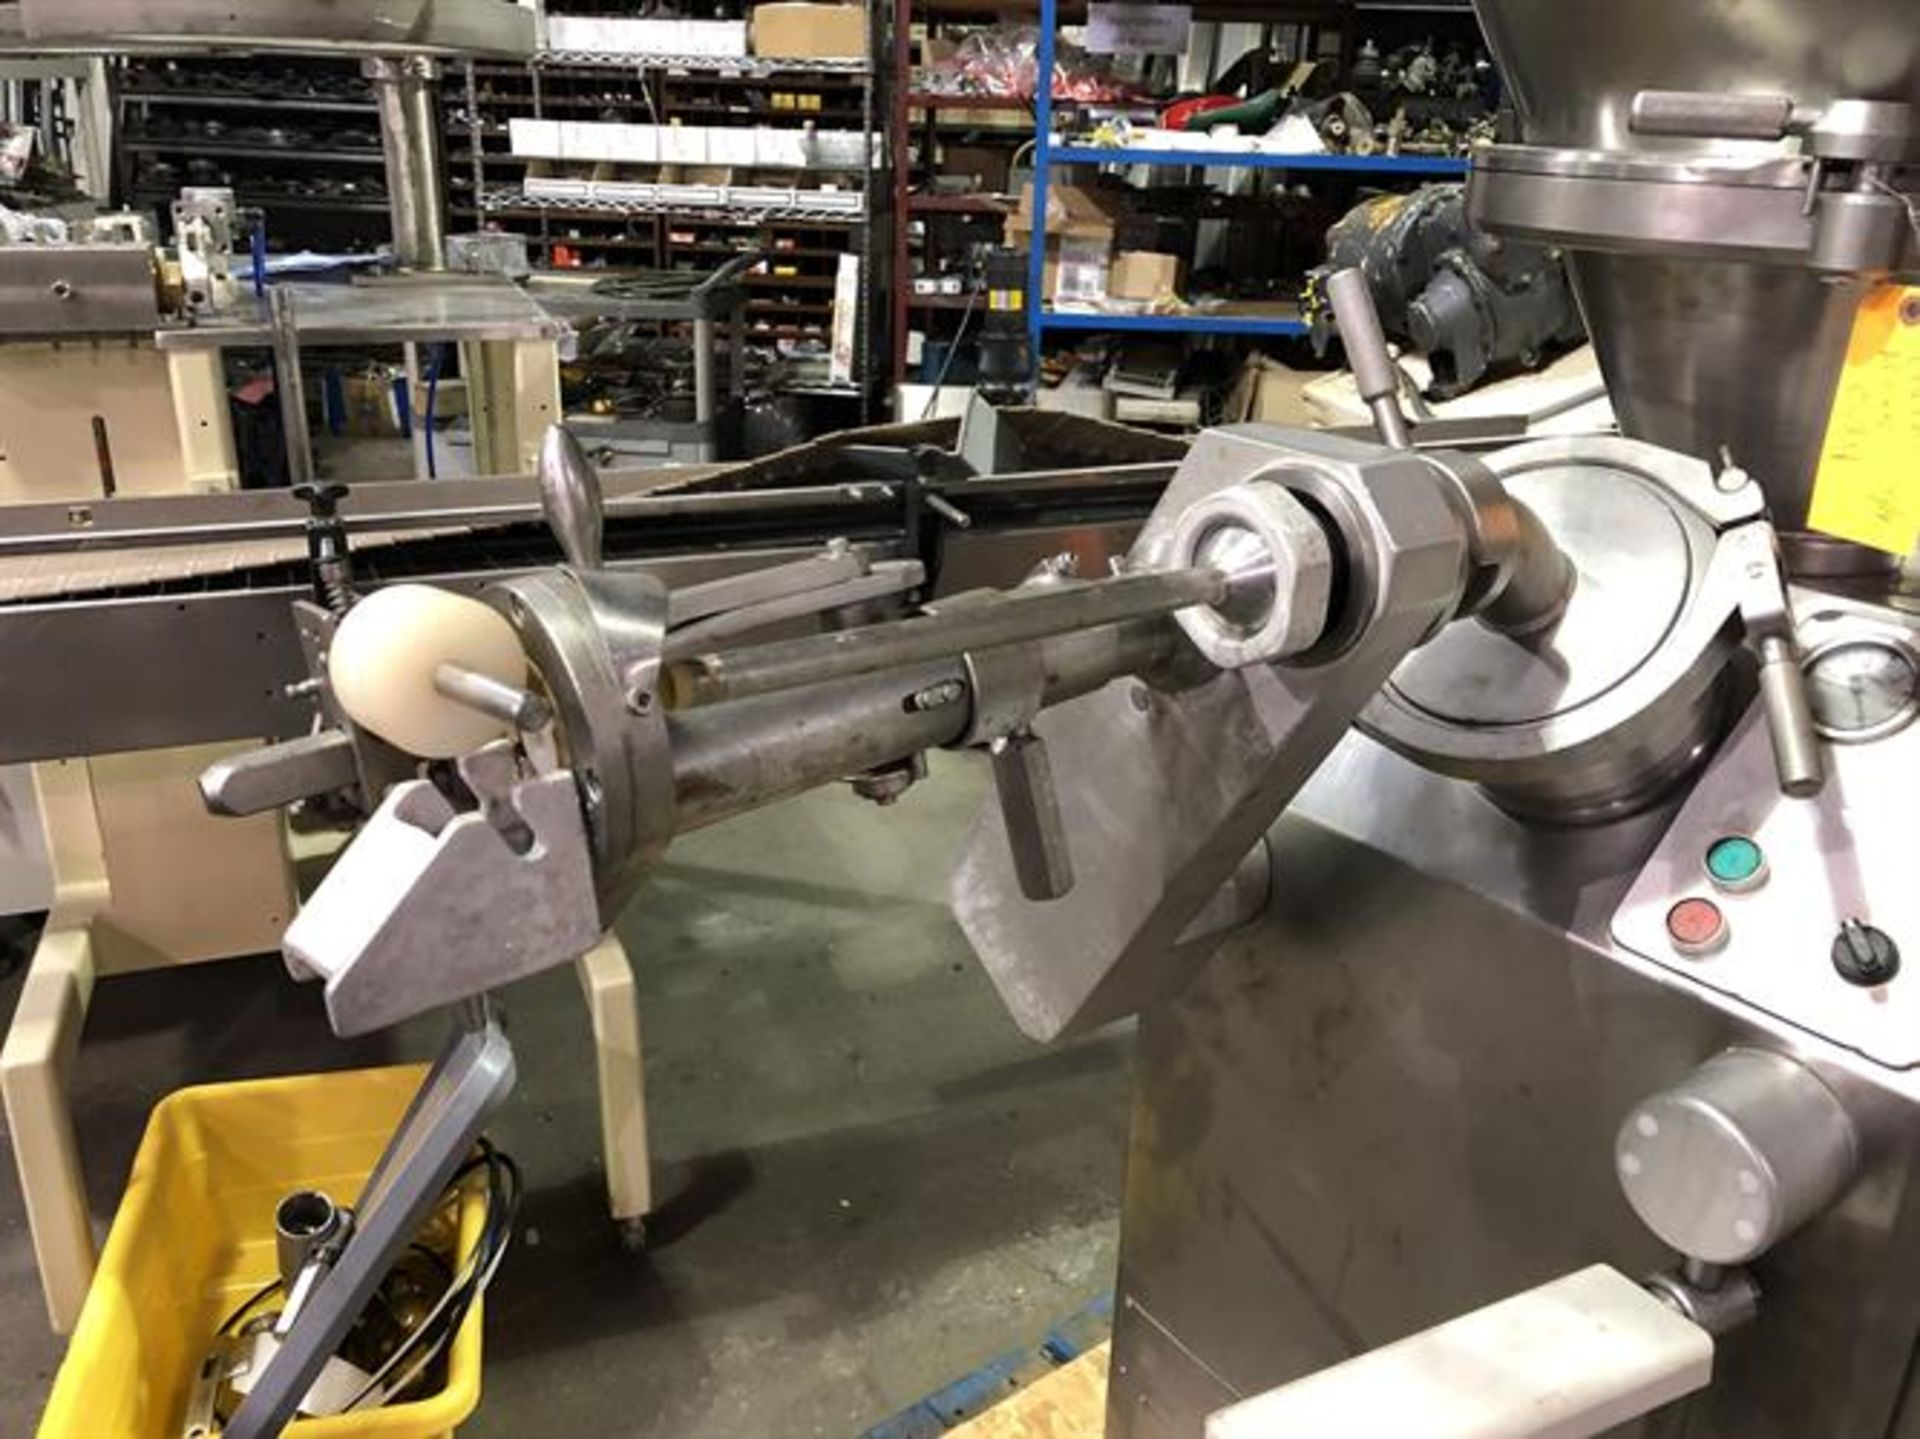 Vemag Robot 500 Stainless Steel Vacuum Stuffer - Machine has been completely reconditioned - PC - Image 13 of 31